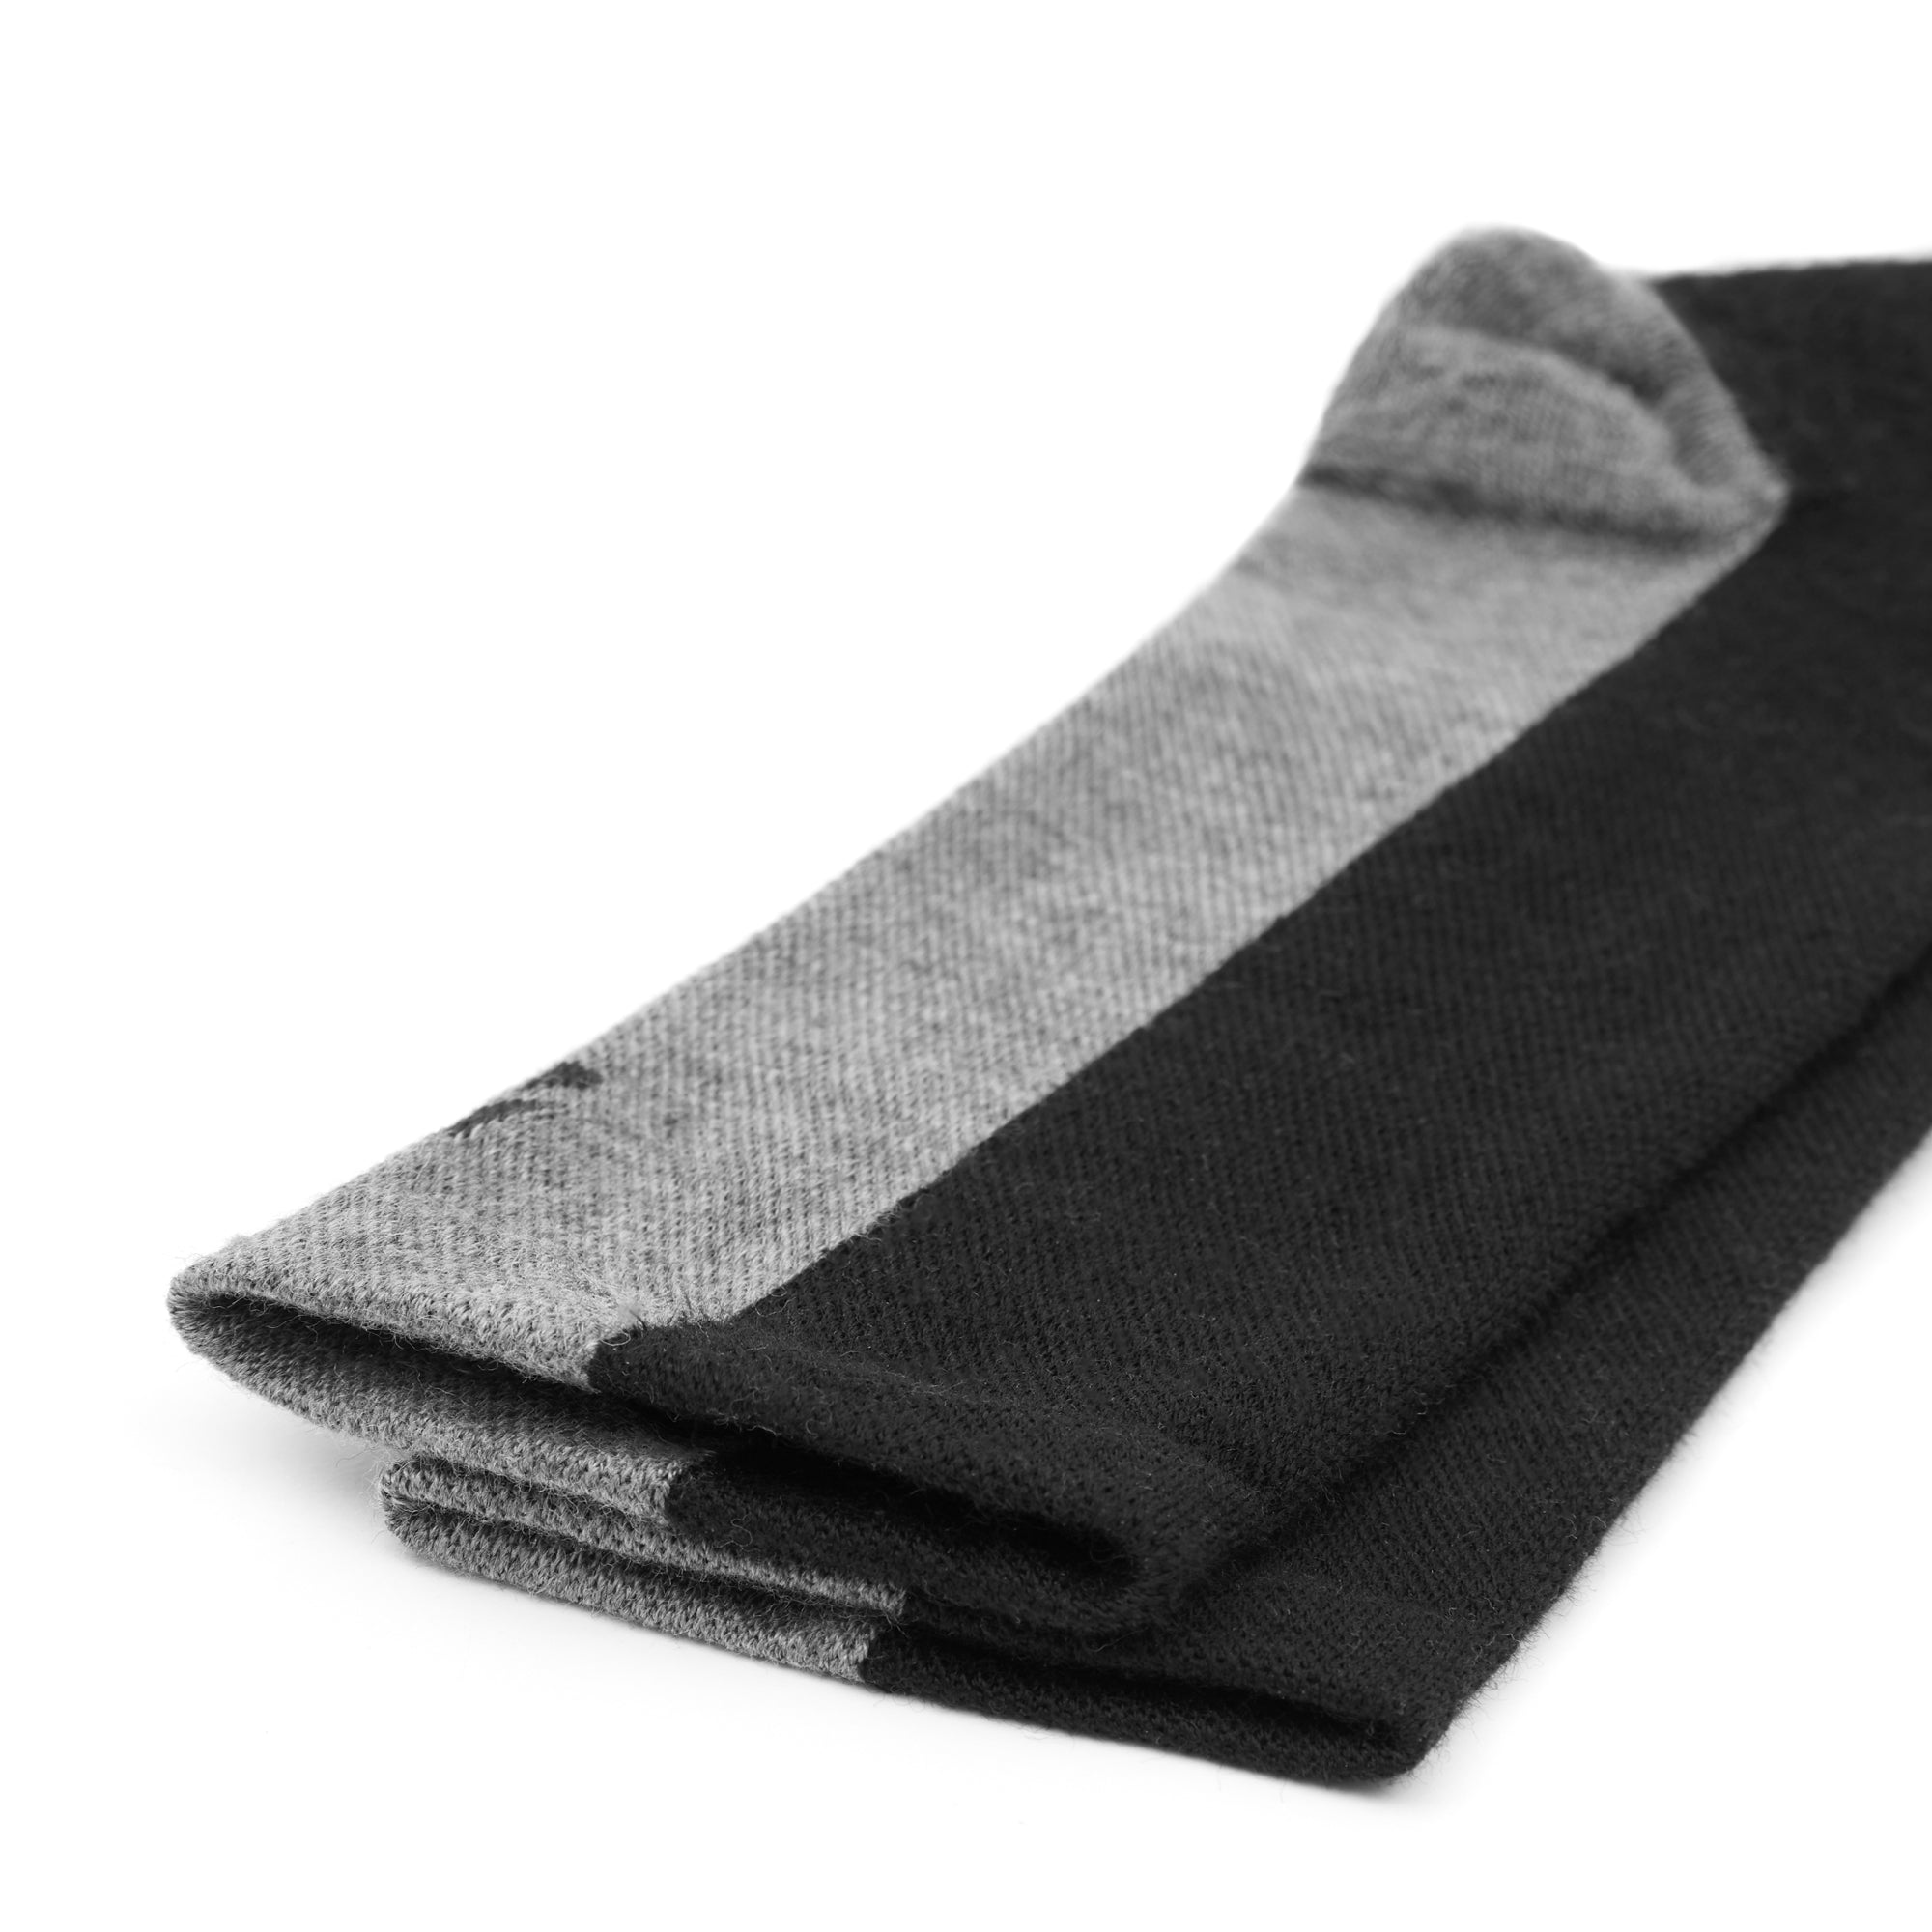 Merino Wool Cycling Socks - Black & Grey